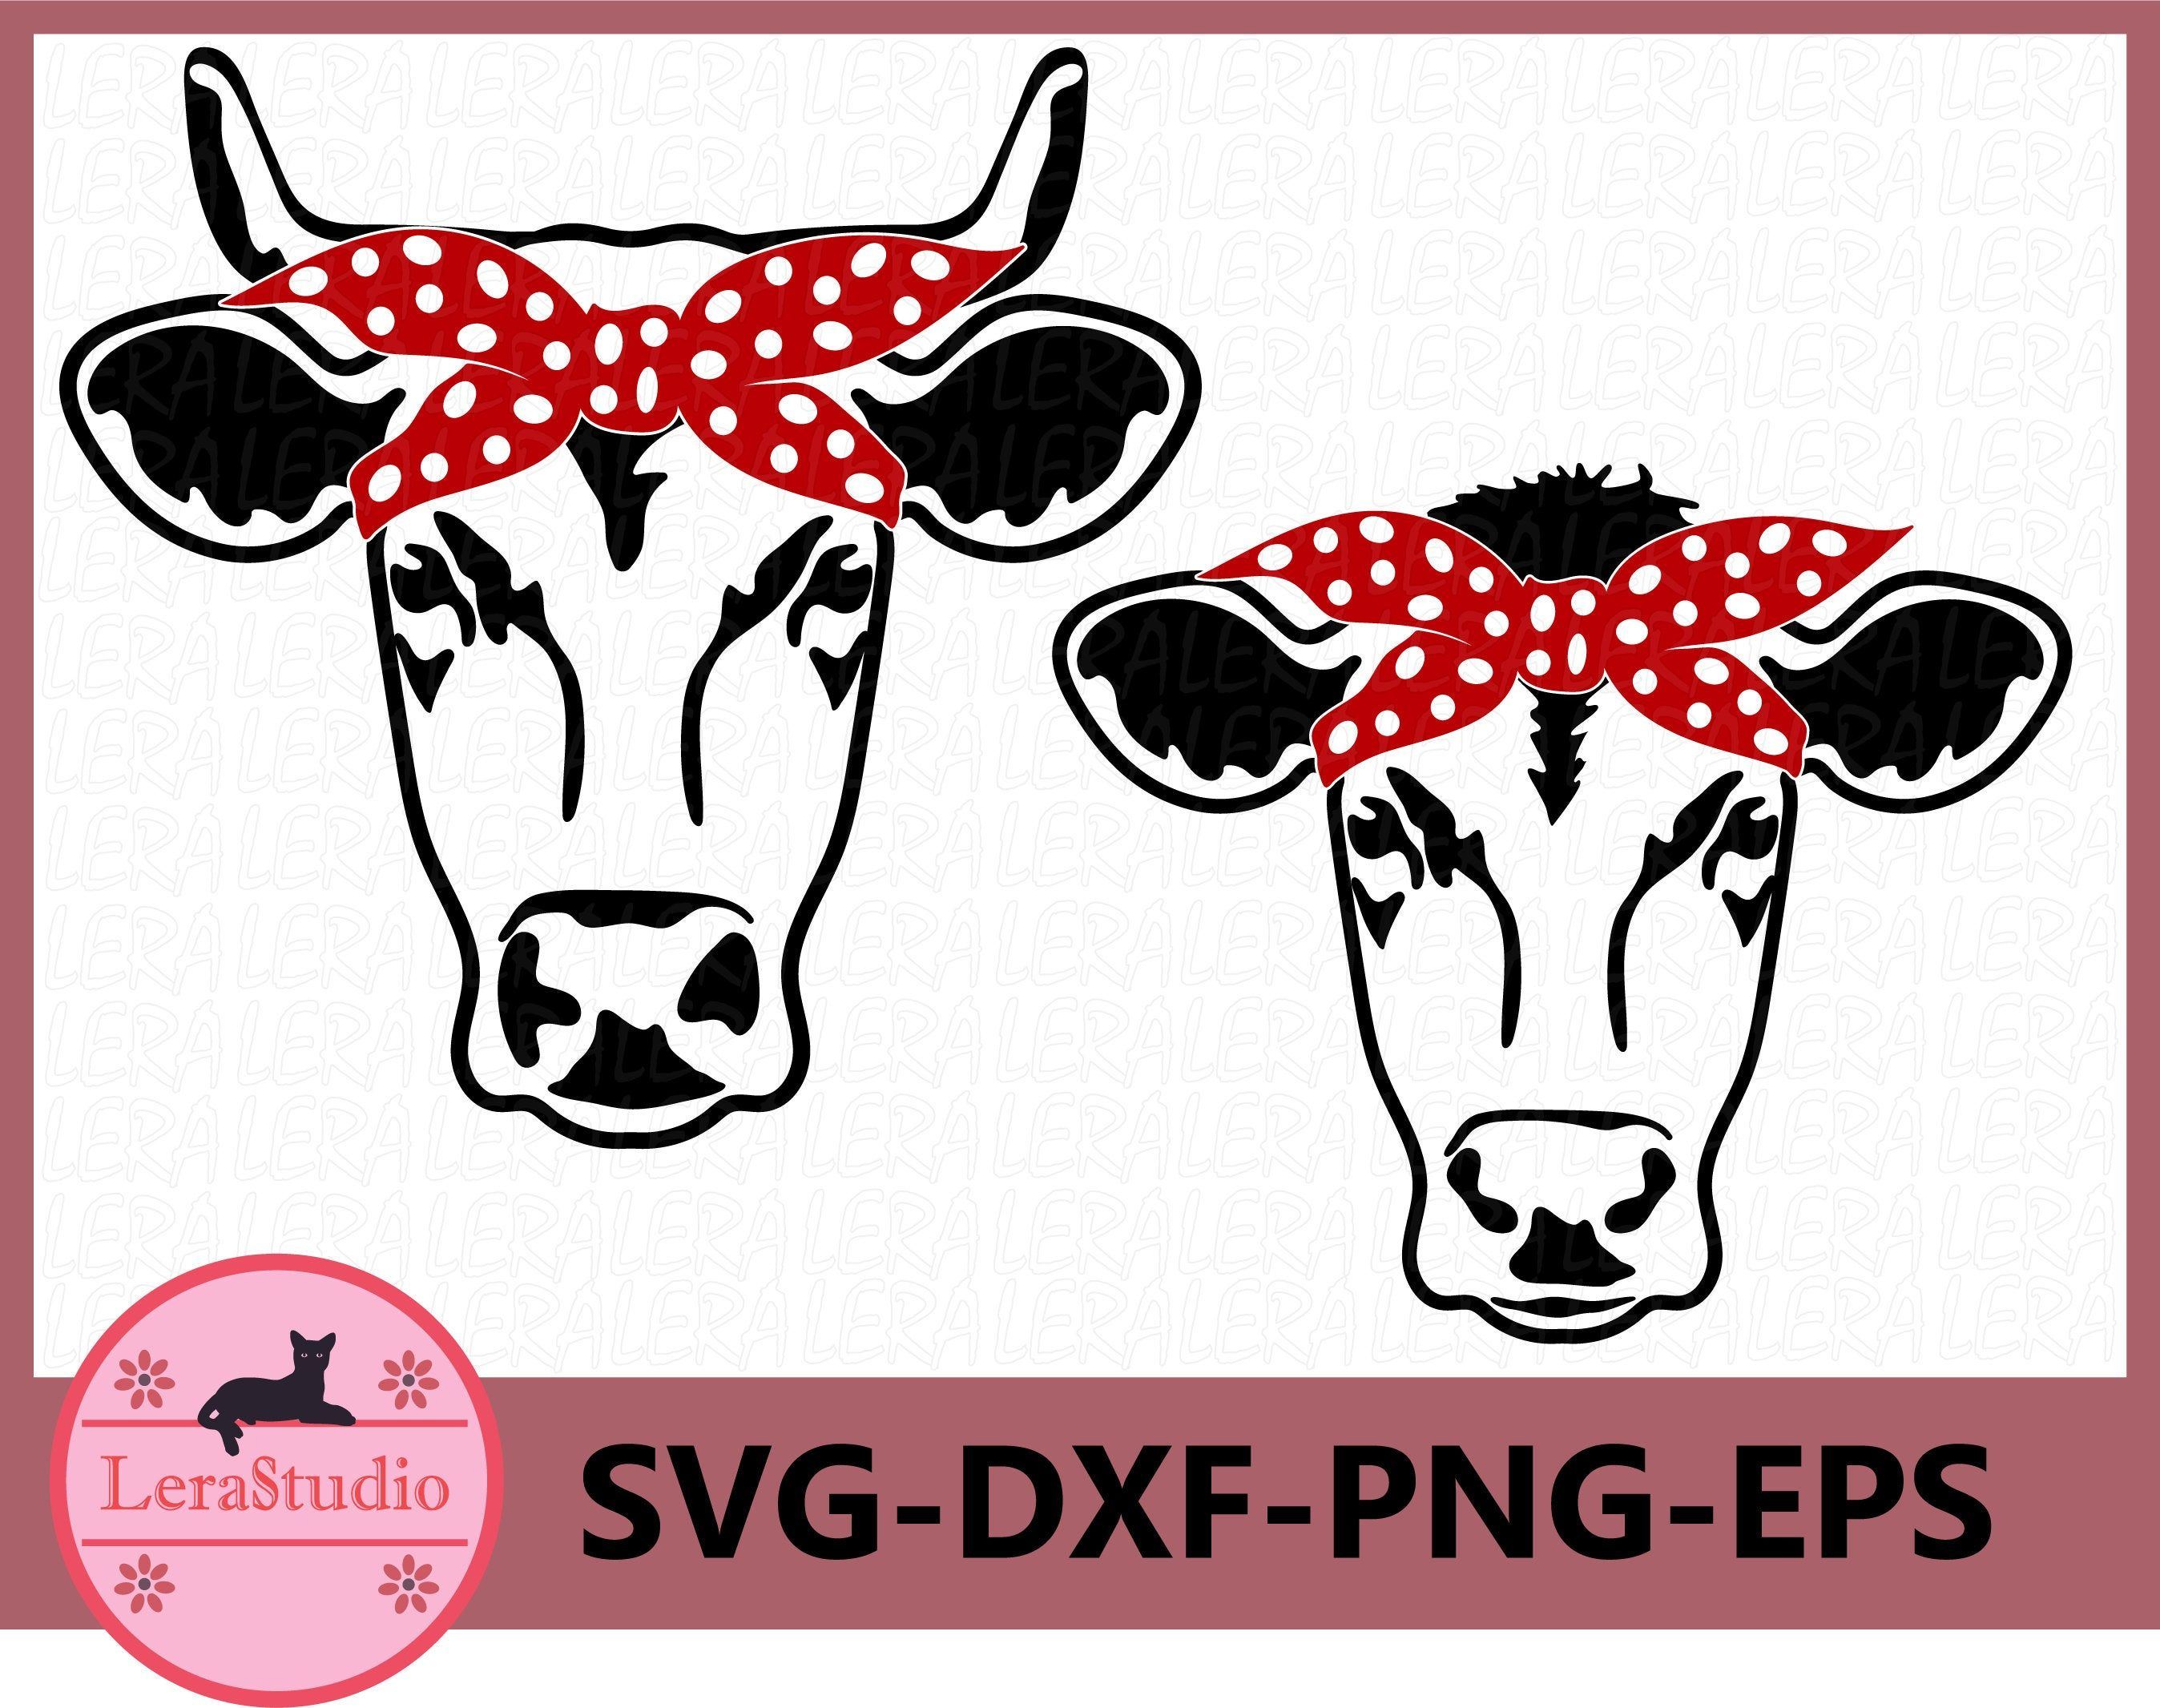 Cow with Bandana svg, Cow SVG, Cow face SVG, Farm svg, Cow